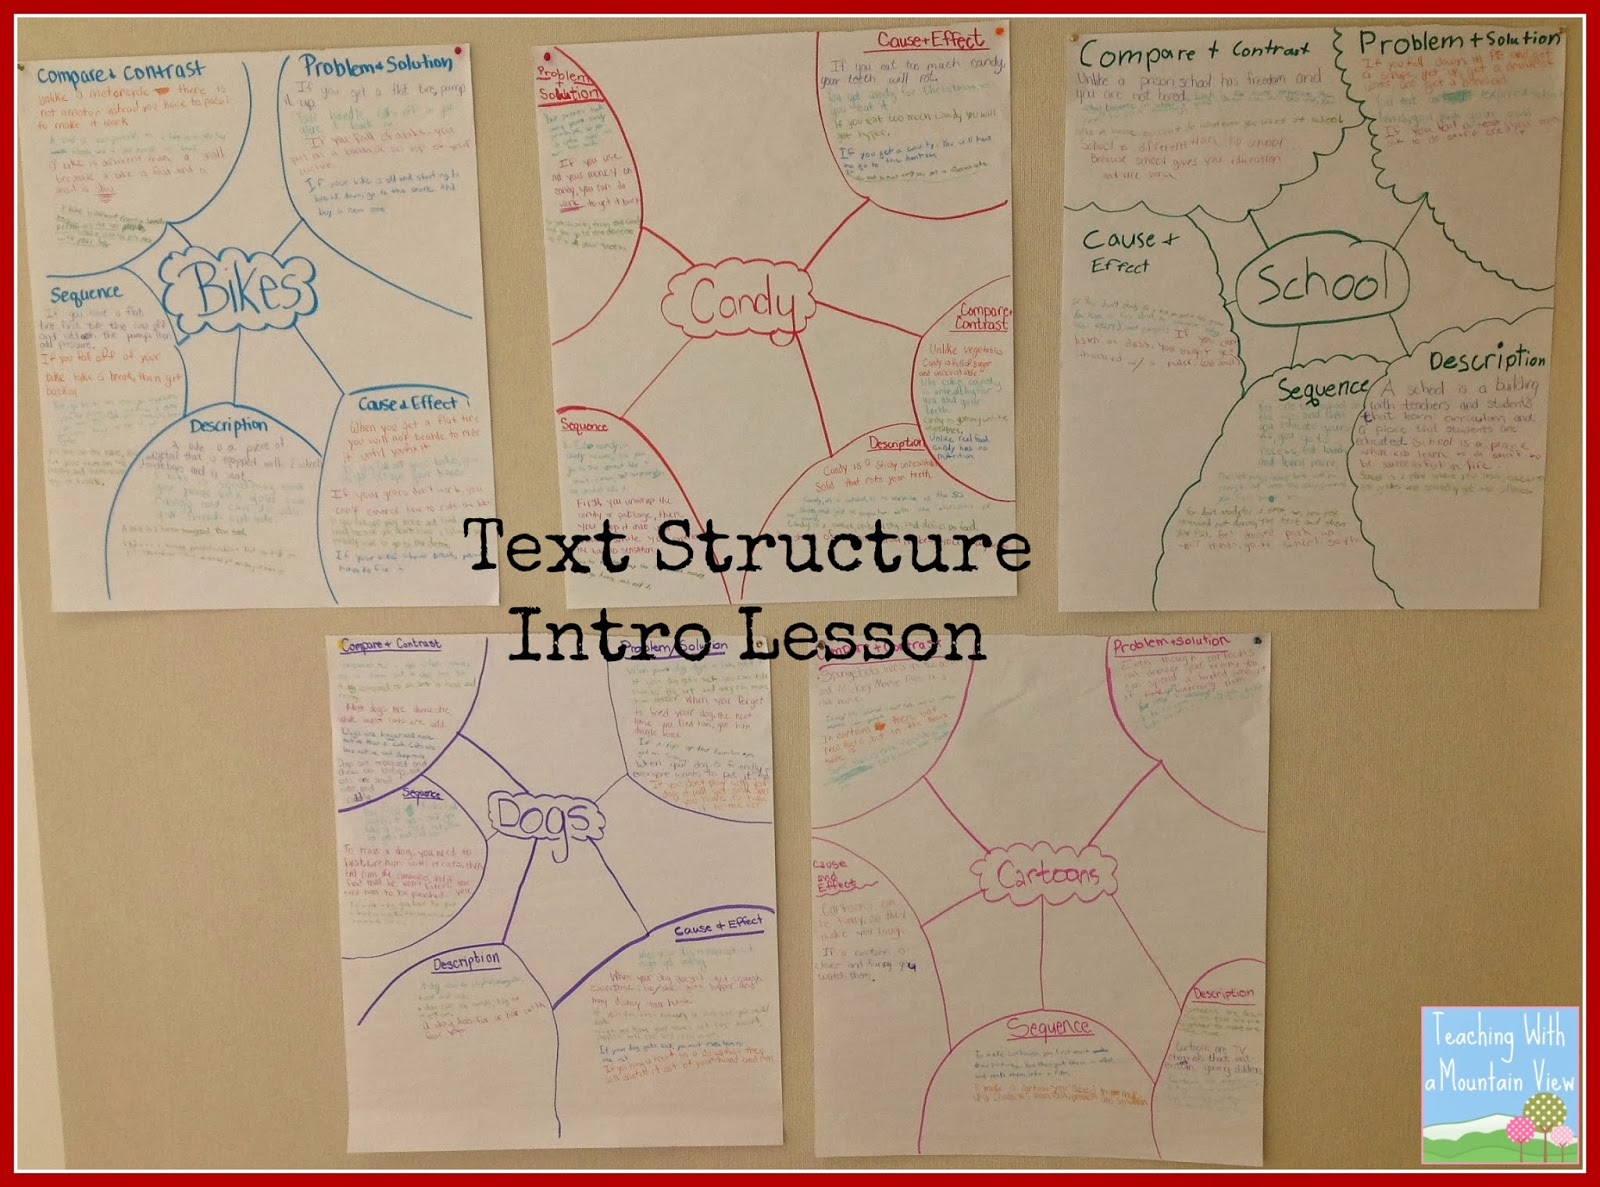 Image: Informational Text Structure Introductory Lesson